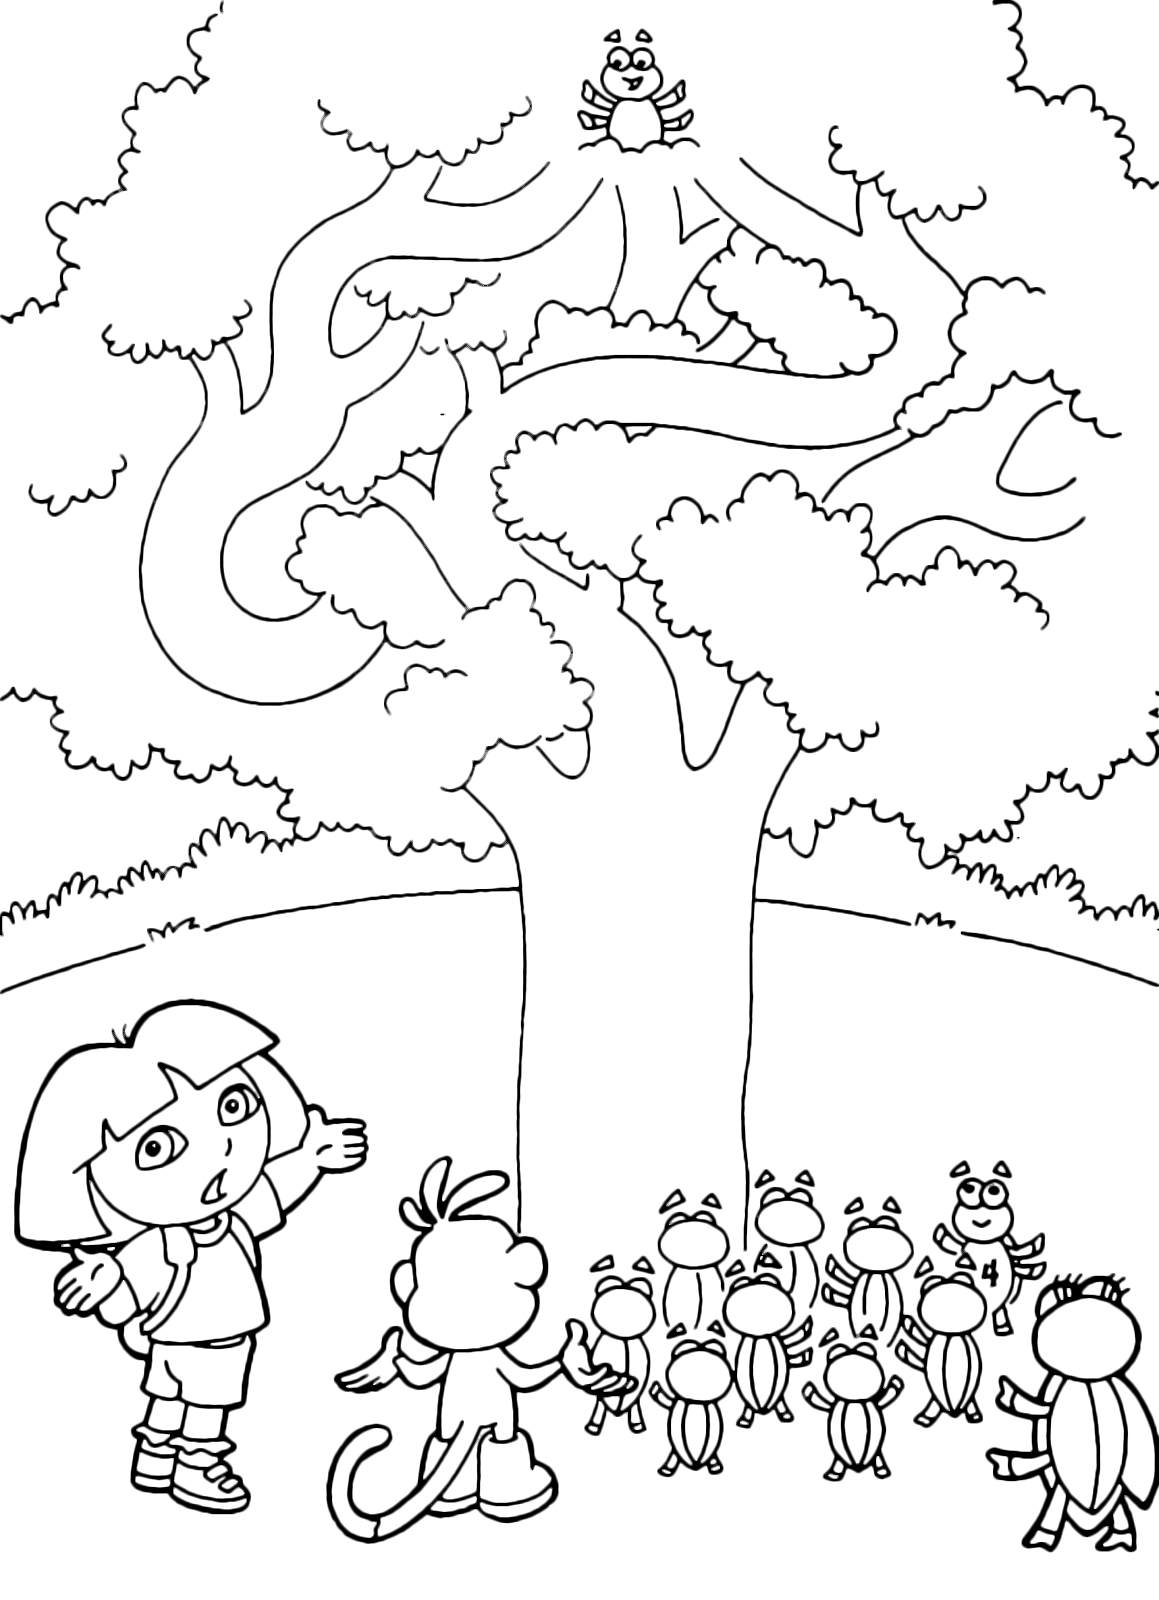 Dora the Explorer - Dora and Boots look for a beetle on the tree